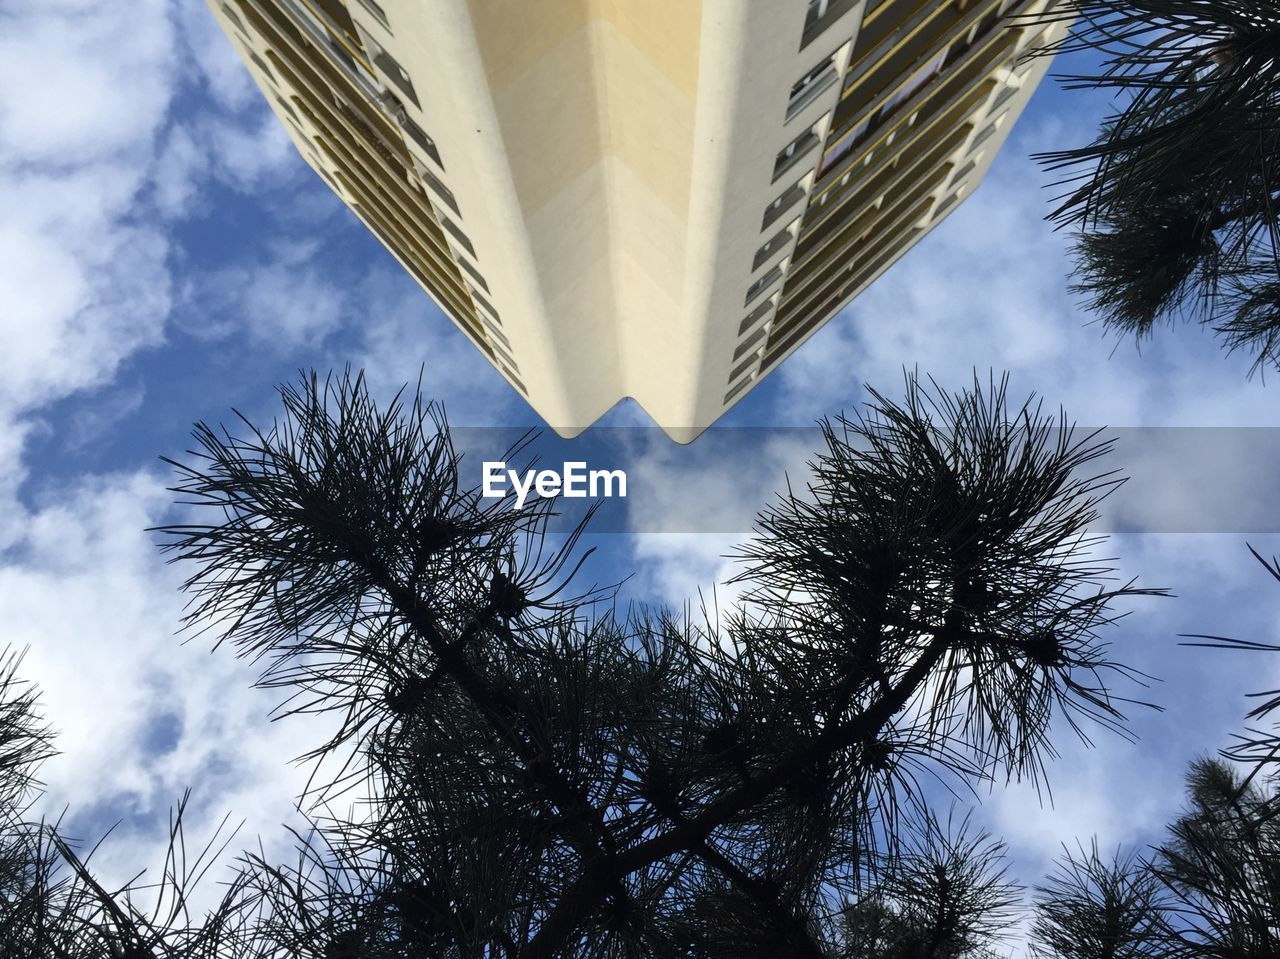 low angle view, tree, sky, growth, outdoors, day, architecture, cloud - sky, no people, building exterior, built structure, palm tree, leaf, skyscraper, branch, nature, city